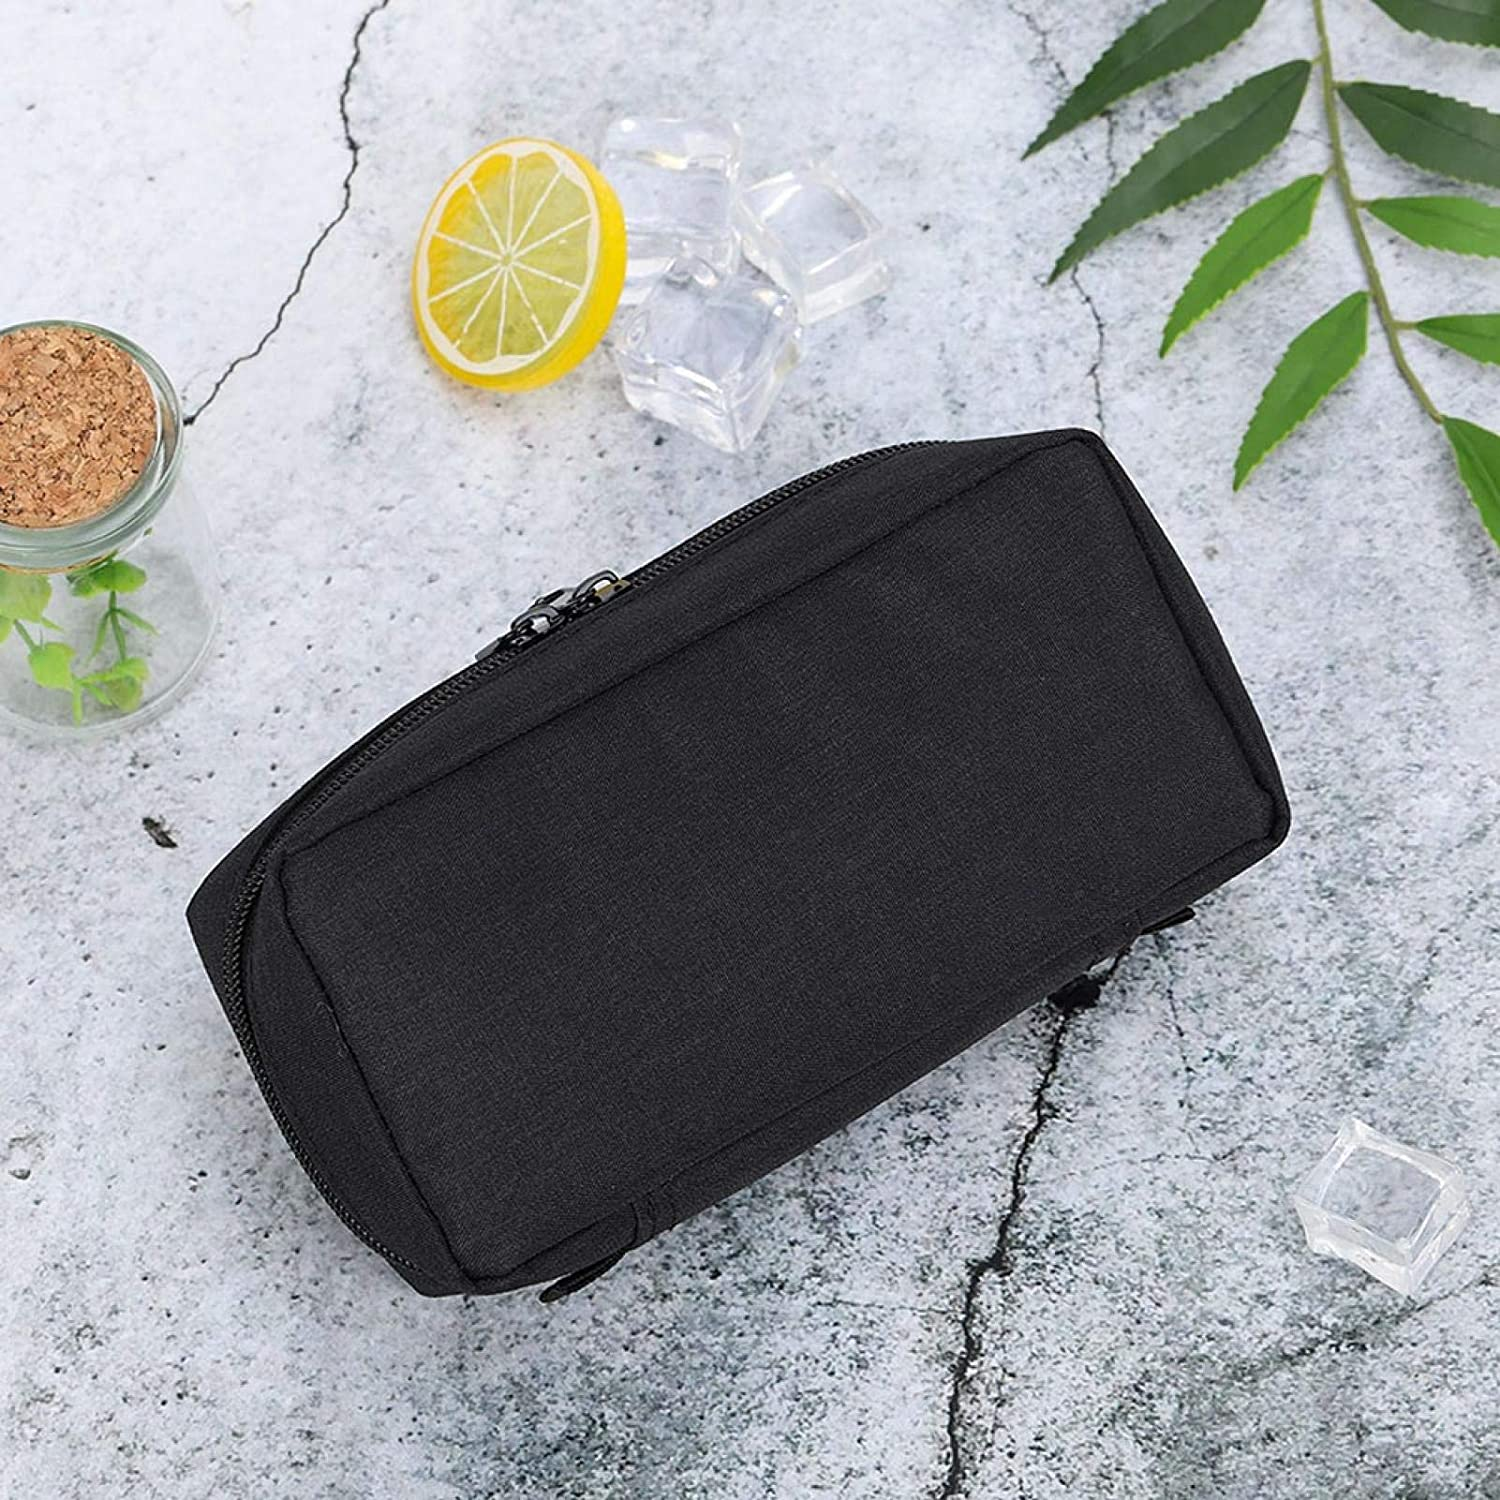 Insulin Bag No Need To Use Medical Electricity 12 Super intense SALE Max 56% OFF black for